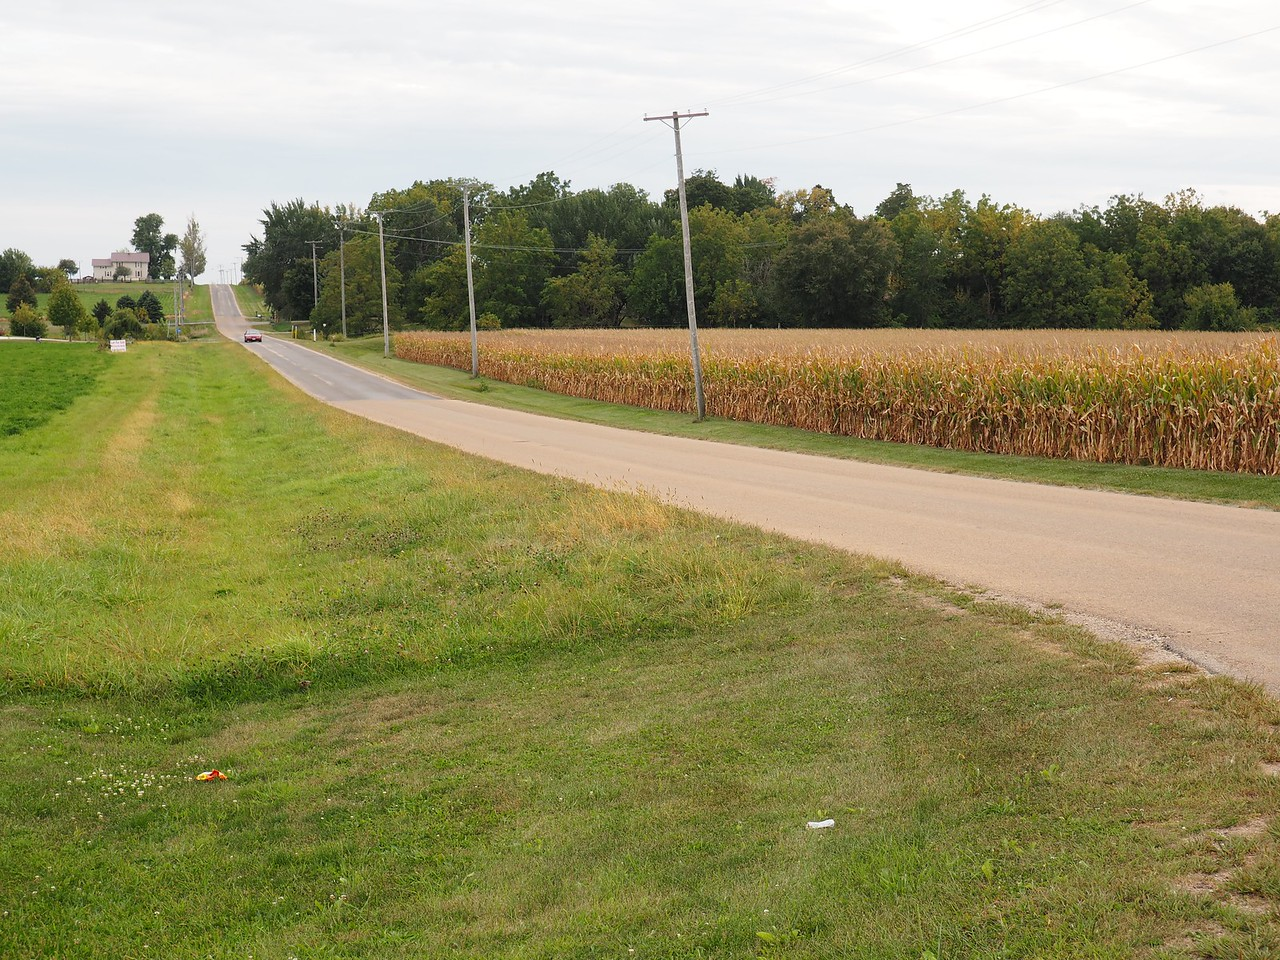 Intersection of County Road 3575E and Indian Boundary line.